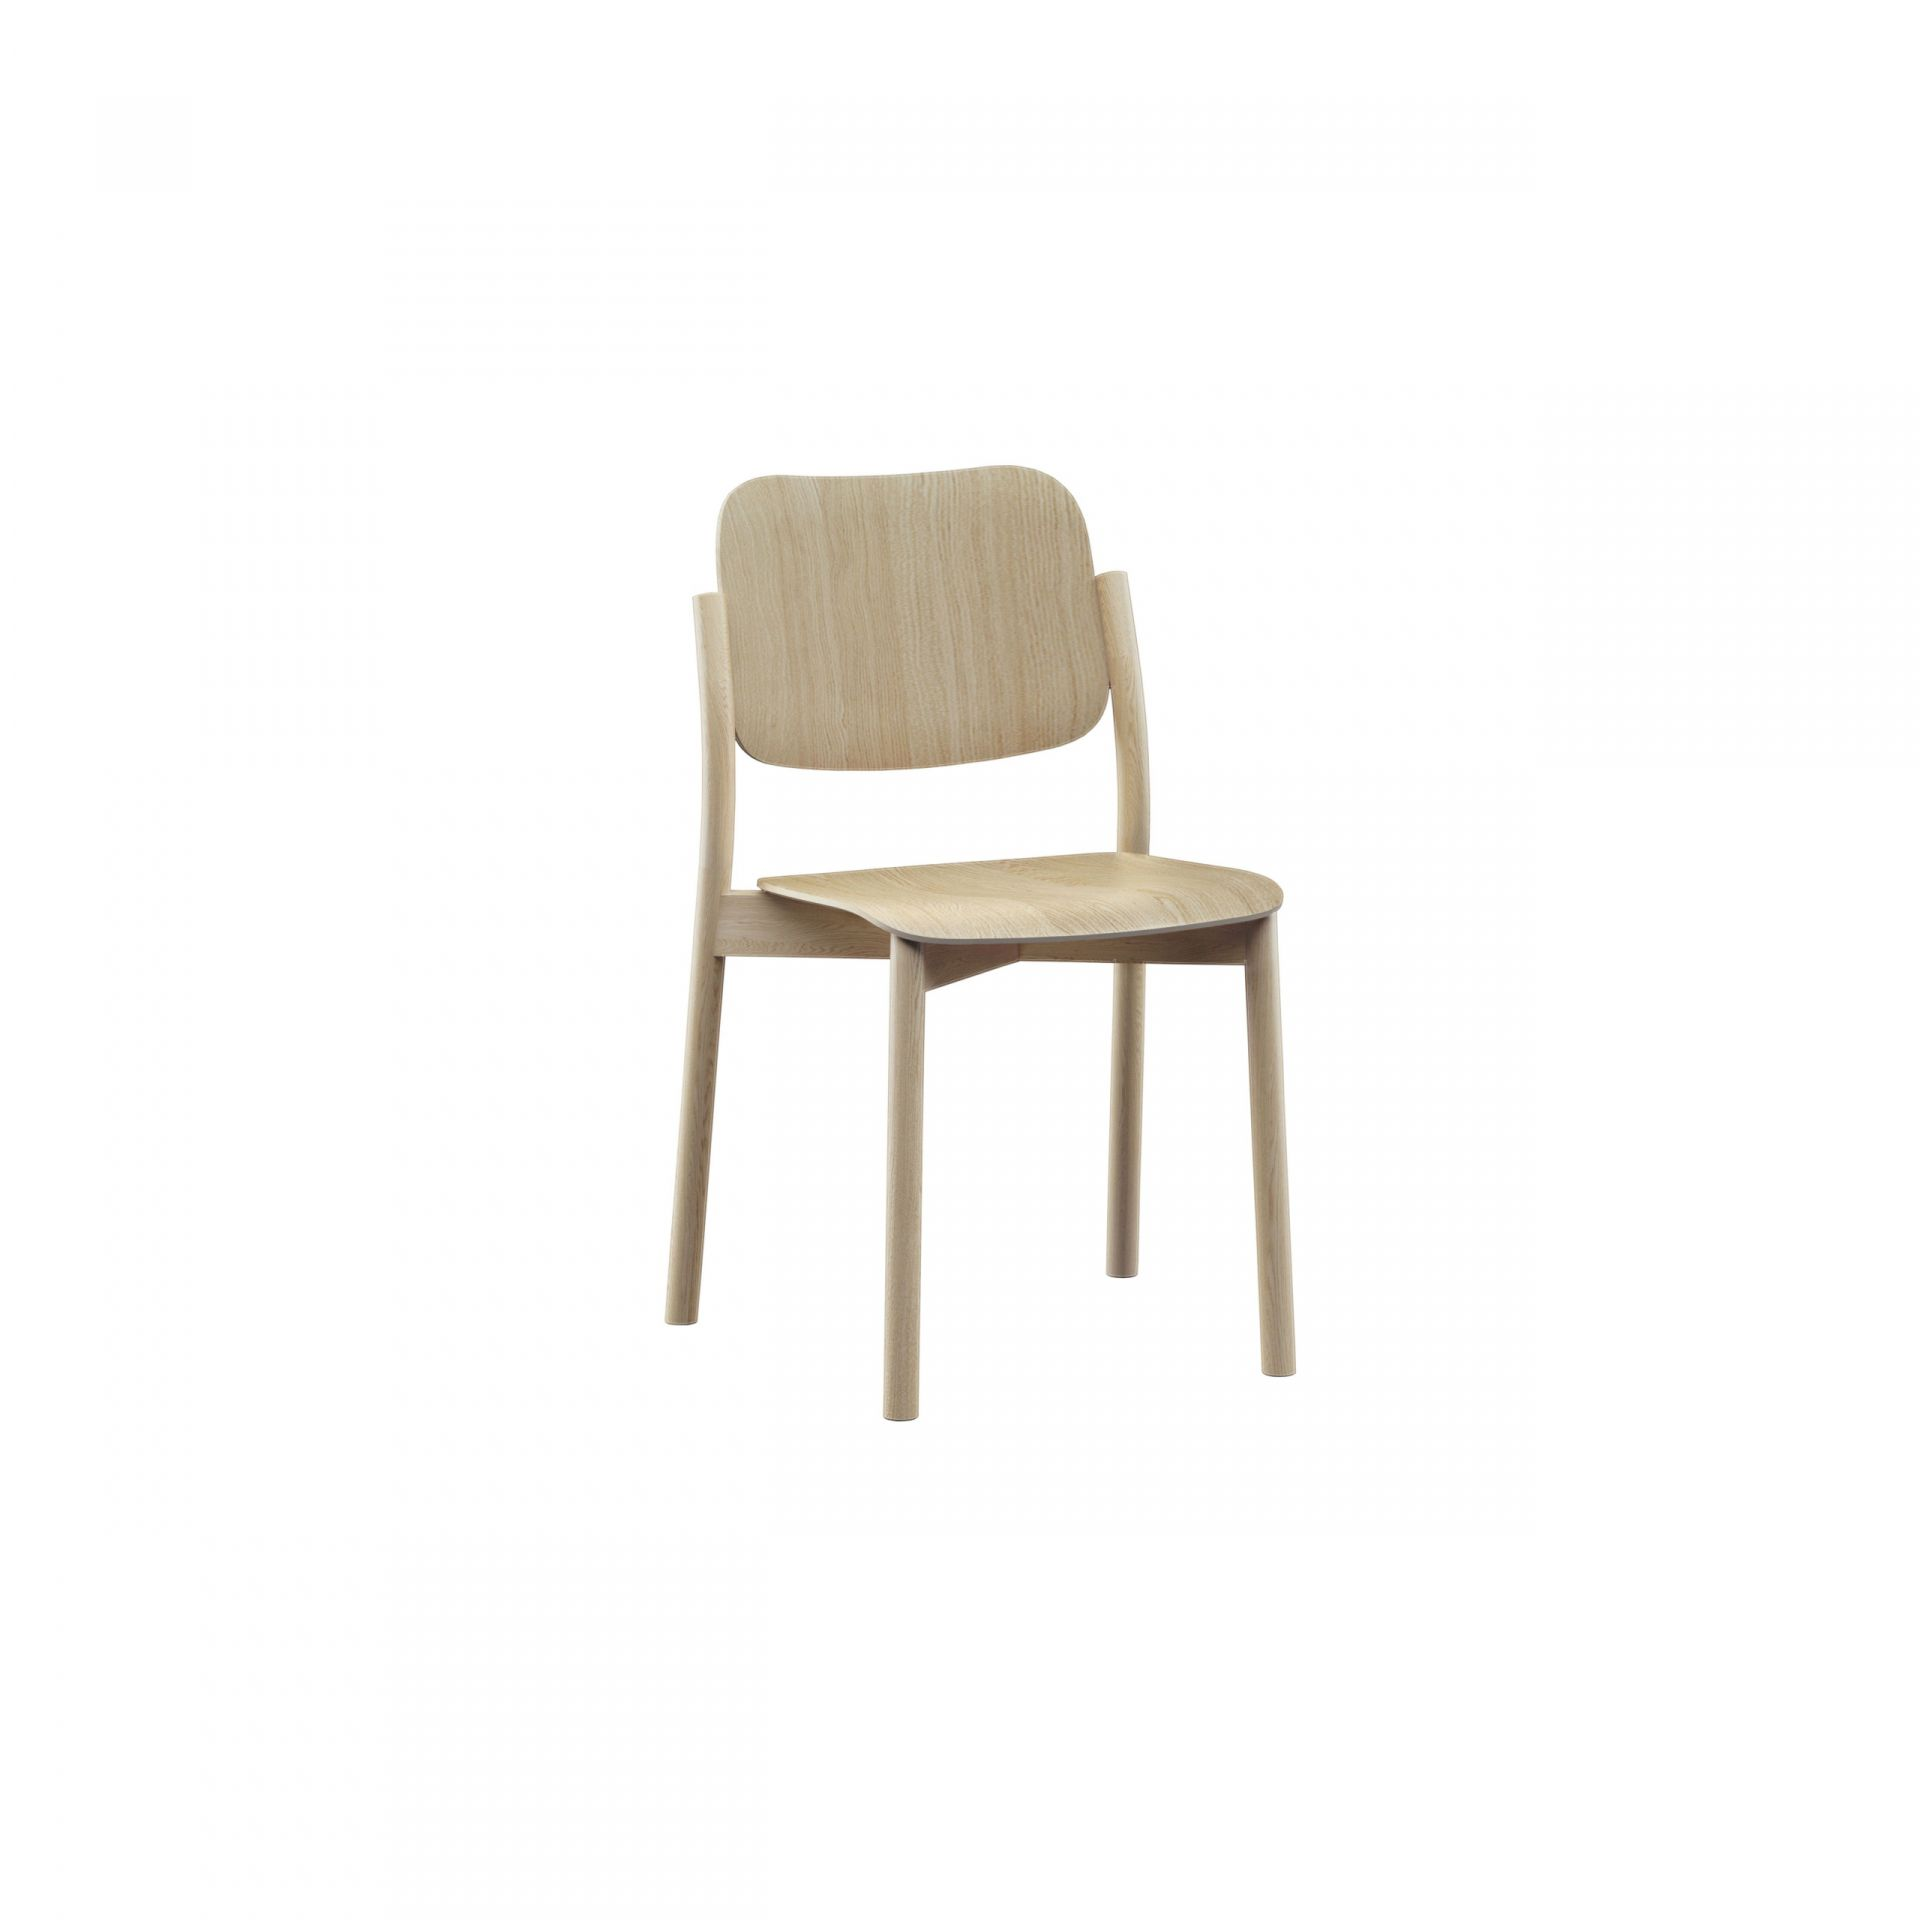 Zoe Wooden chair product image 10